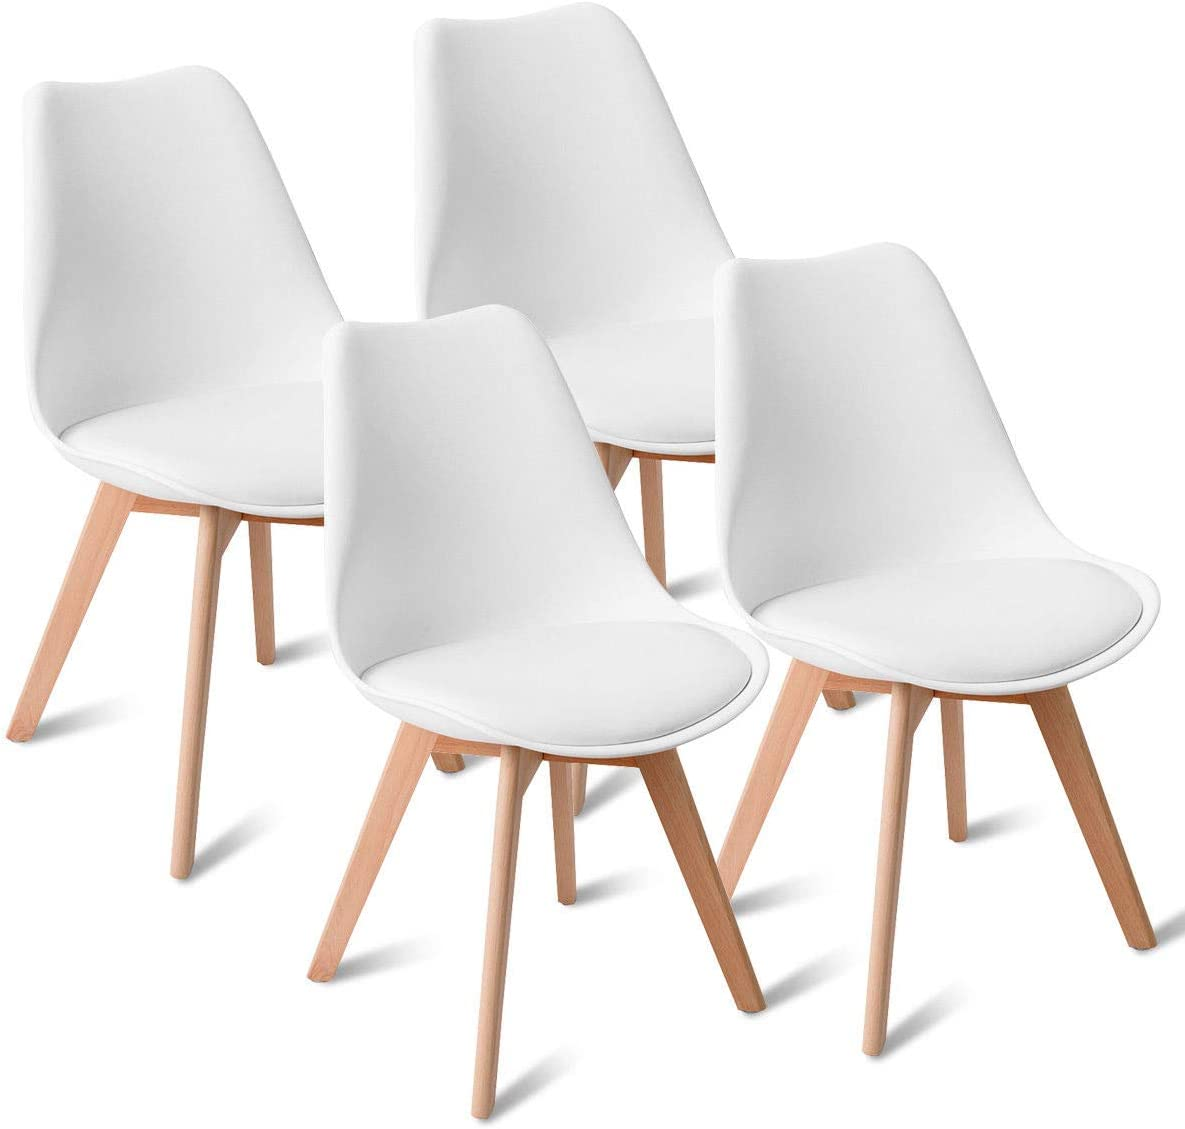 Giantex Mid Century Modern DSW Dining Chairs Upholstered Side Chair Wood Leg and Soft Padded White, Set of 4